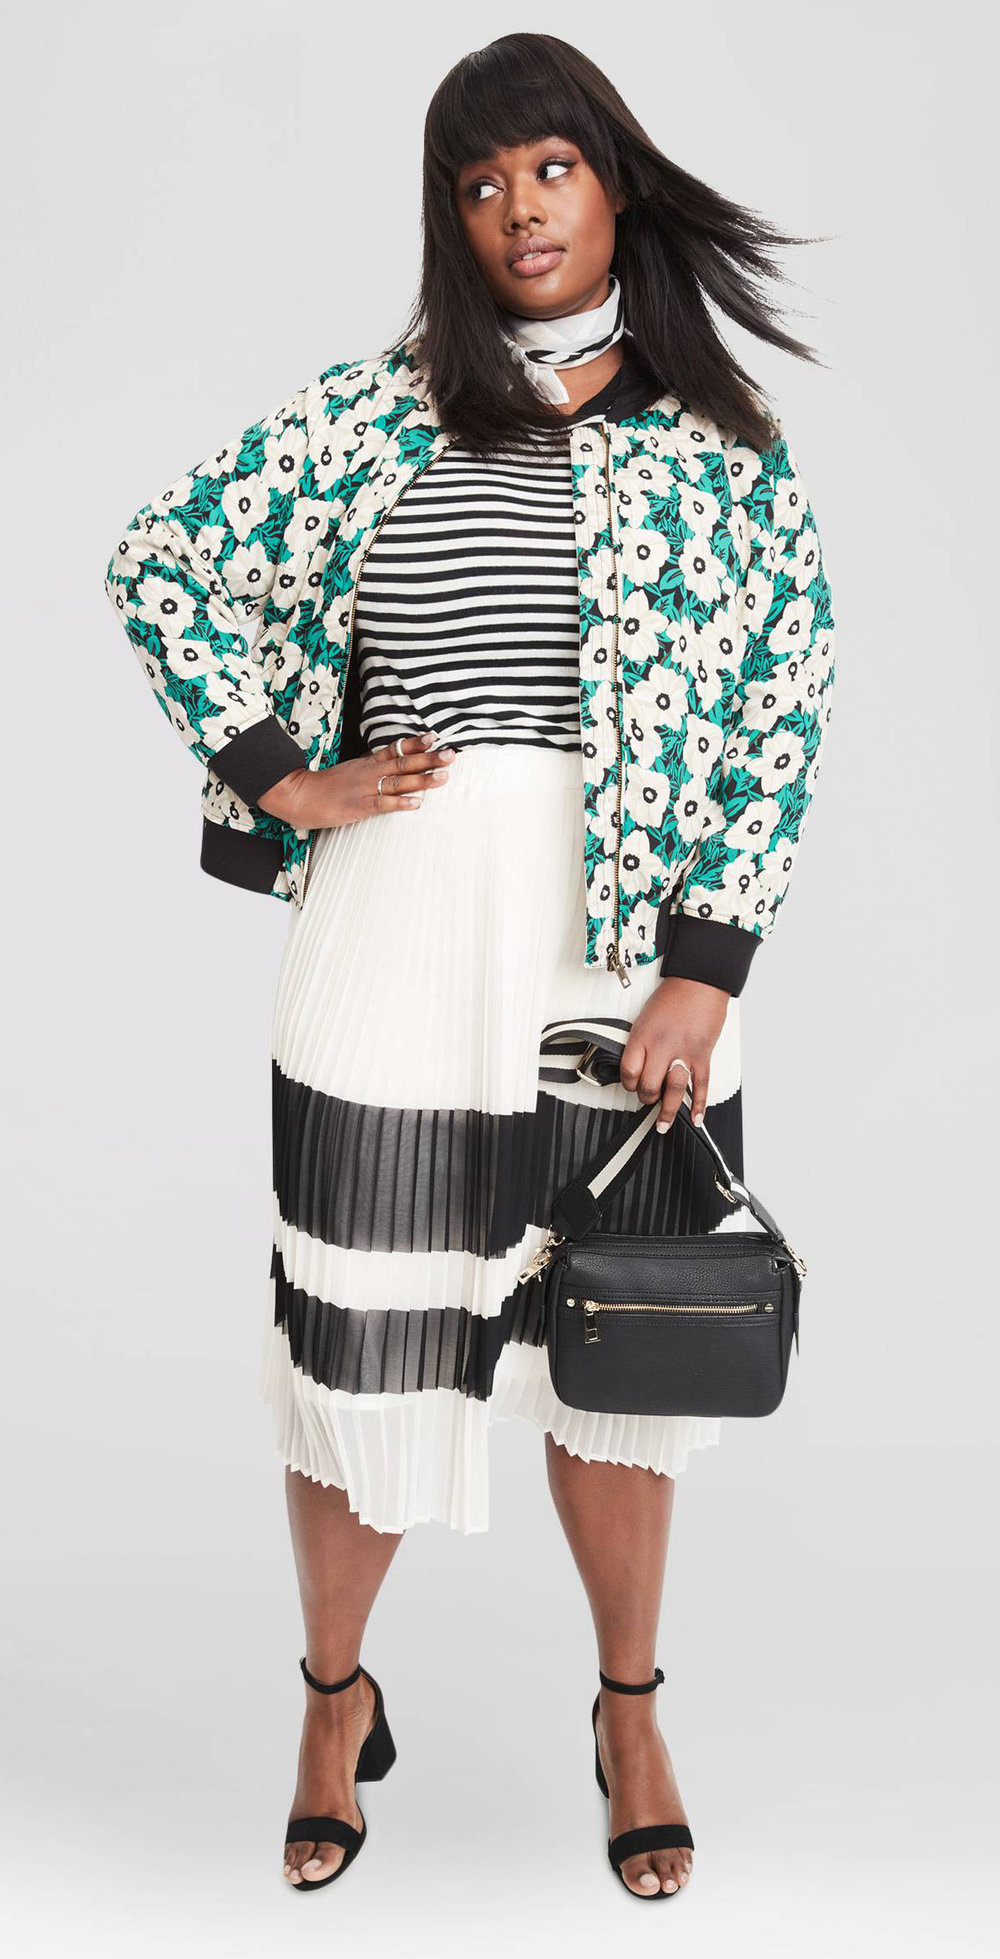 white-midi-skirt-stripe-black-tee-stripe-green-emerald-jacket-bomber-floral-print-white-scarf-neck-bandana-black-bag-black-shoe-sandalh-mix-outfit-spring-summer-brun-dinner.jpg